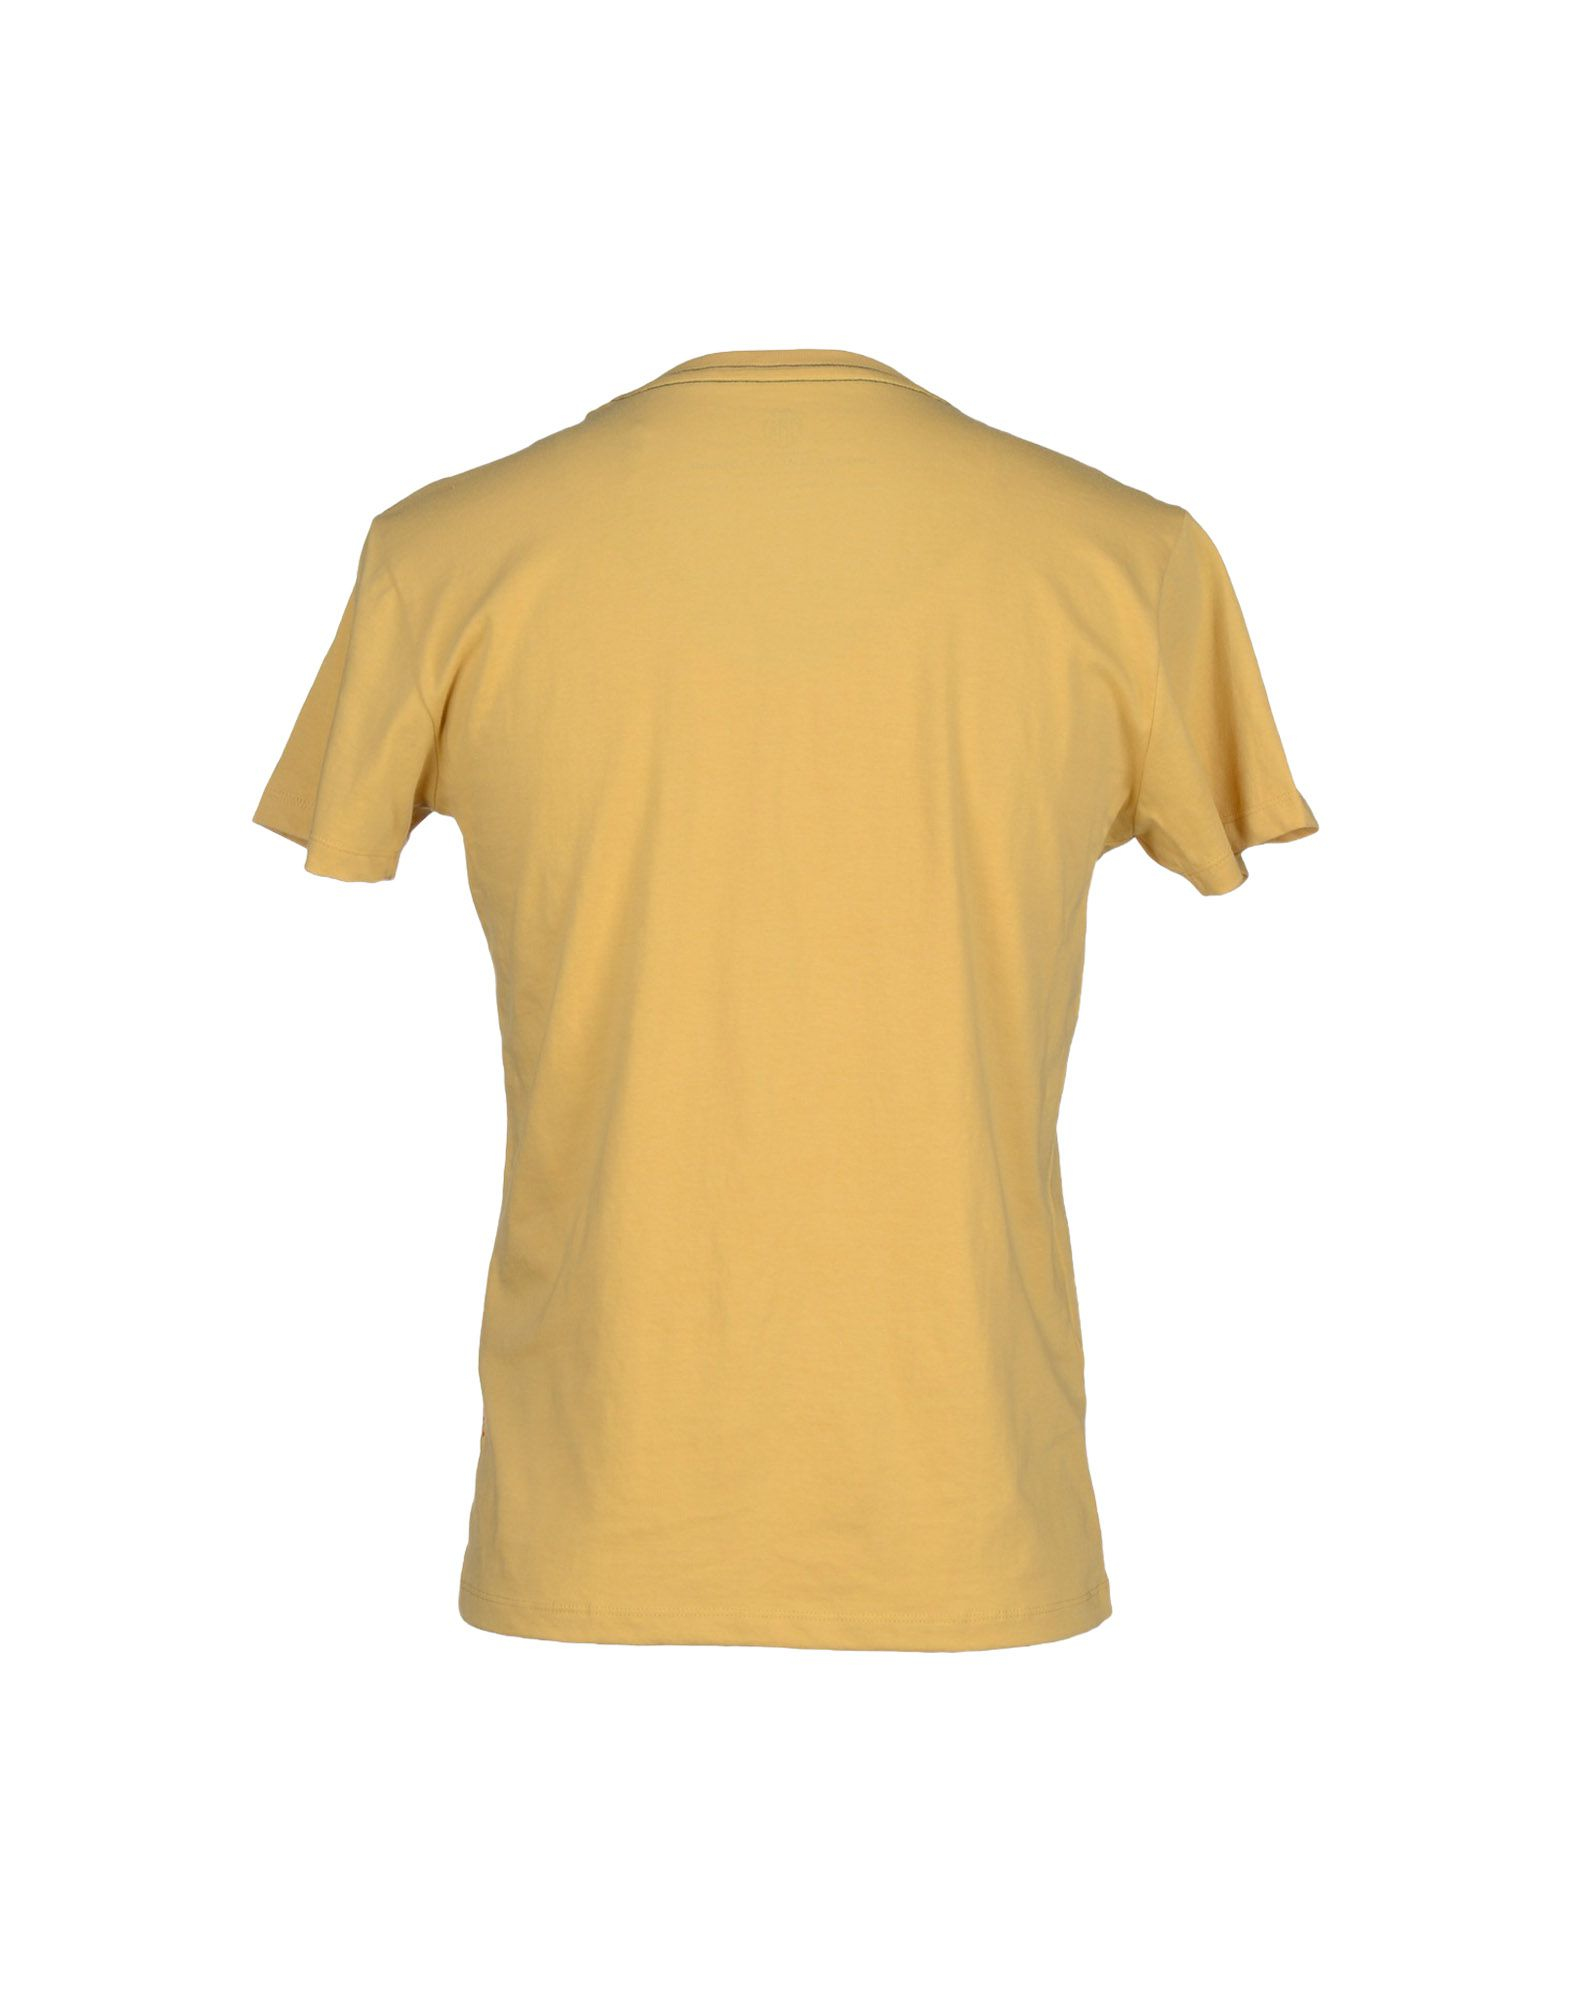 replay t shirt in yellow for men lyst. Black Bedroom Furniture Sets. Home Design Ideas